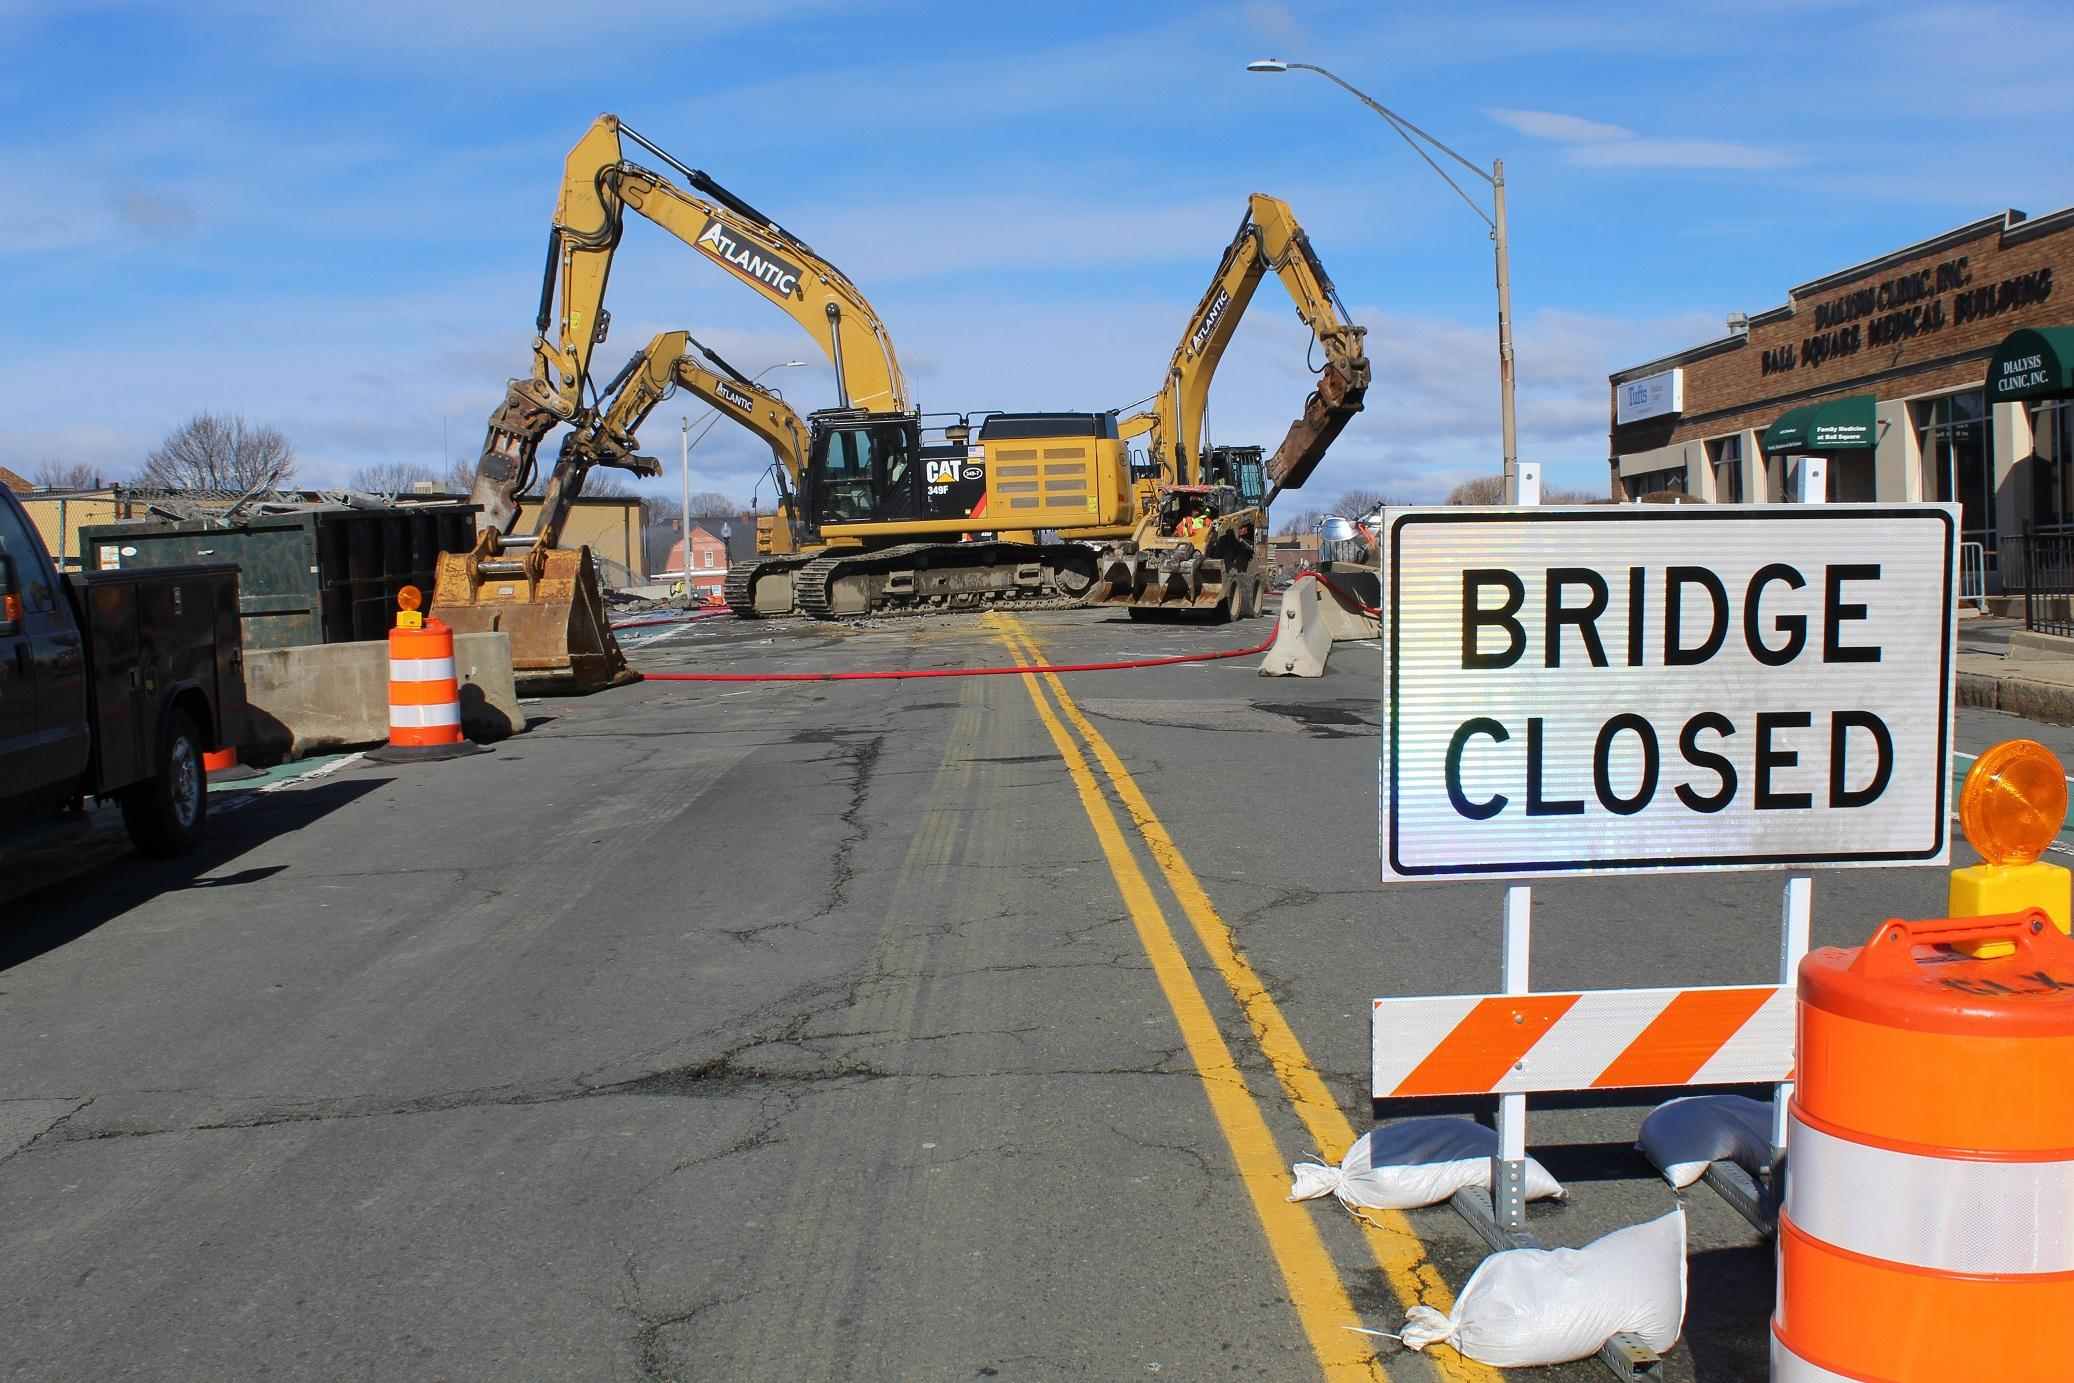 Demolition heavy machinery on the Broadway Bridge, with a BRIDGE CLOSED sign in the foreground.